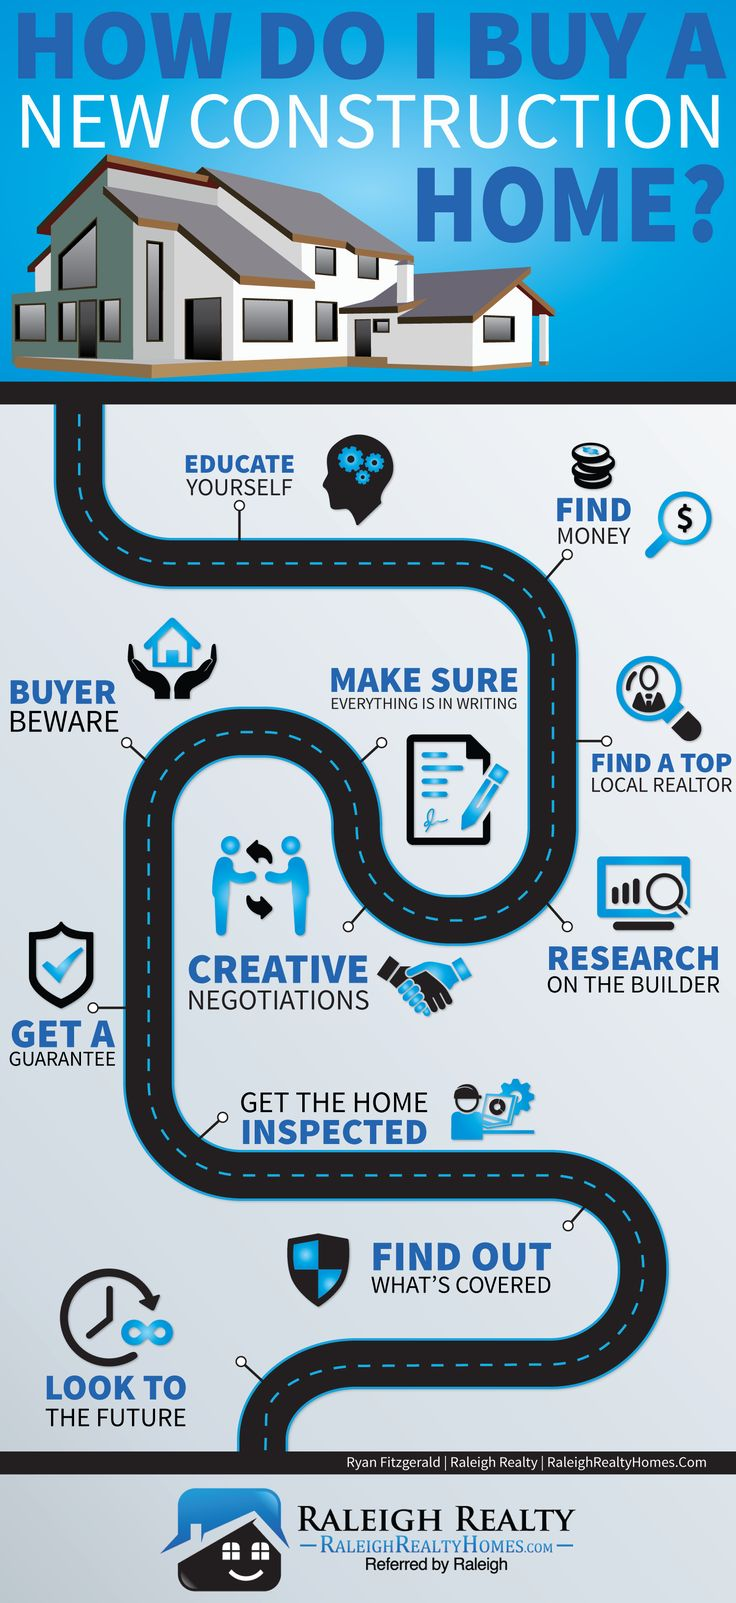 Great Tips For Buying a New Home: http://www.raleighrealtyhomes.